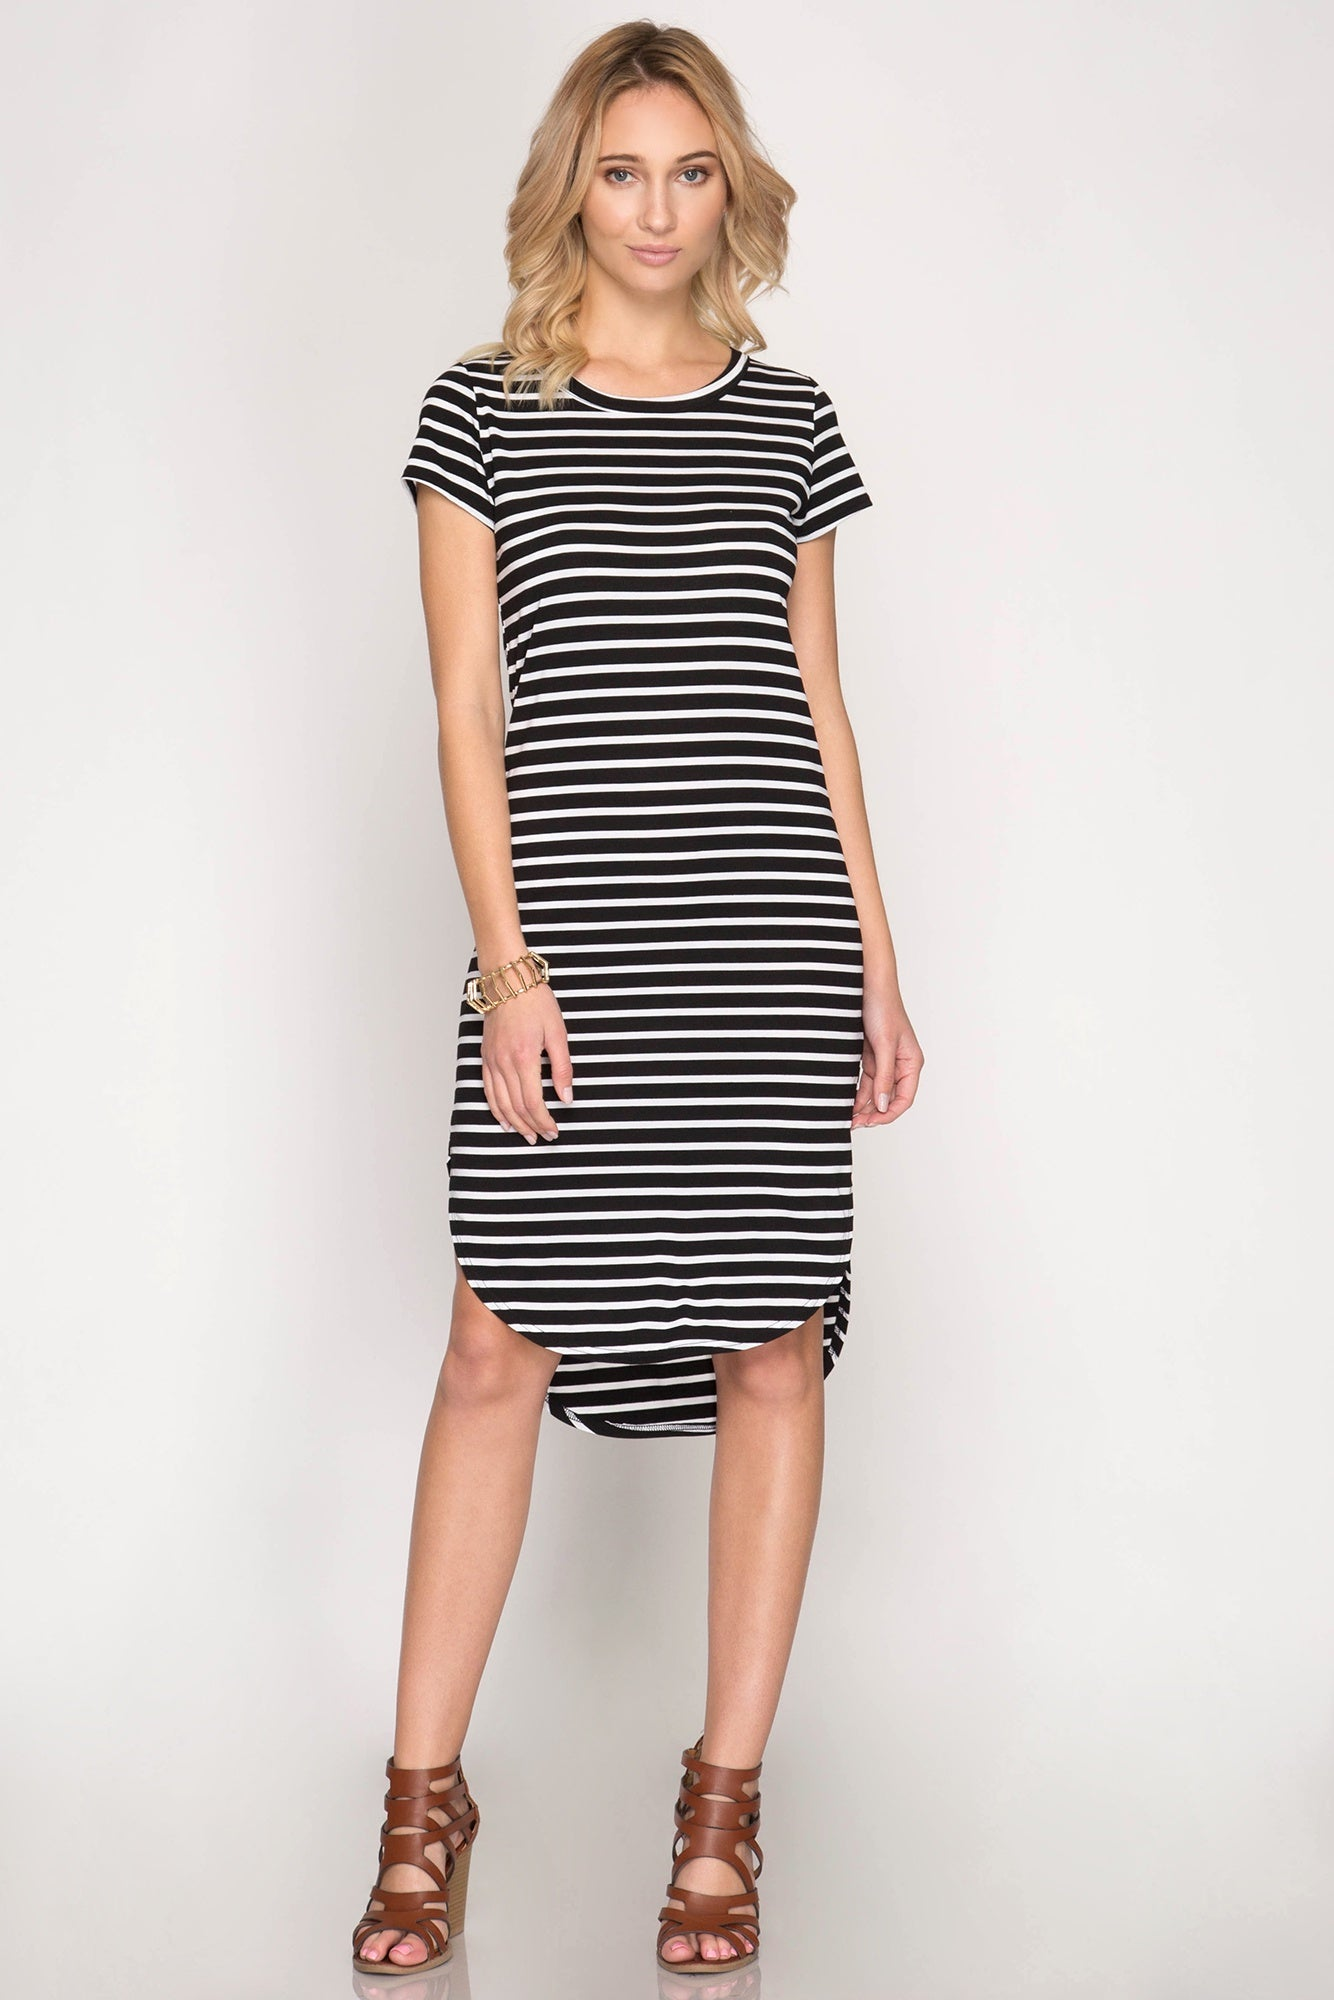 Follow the Line Midi Dress